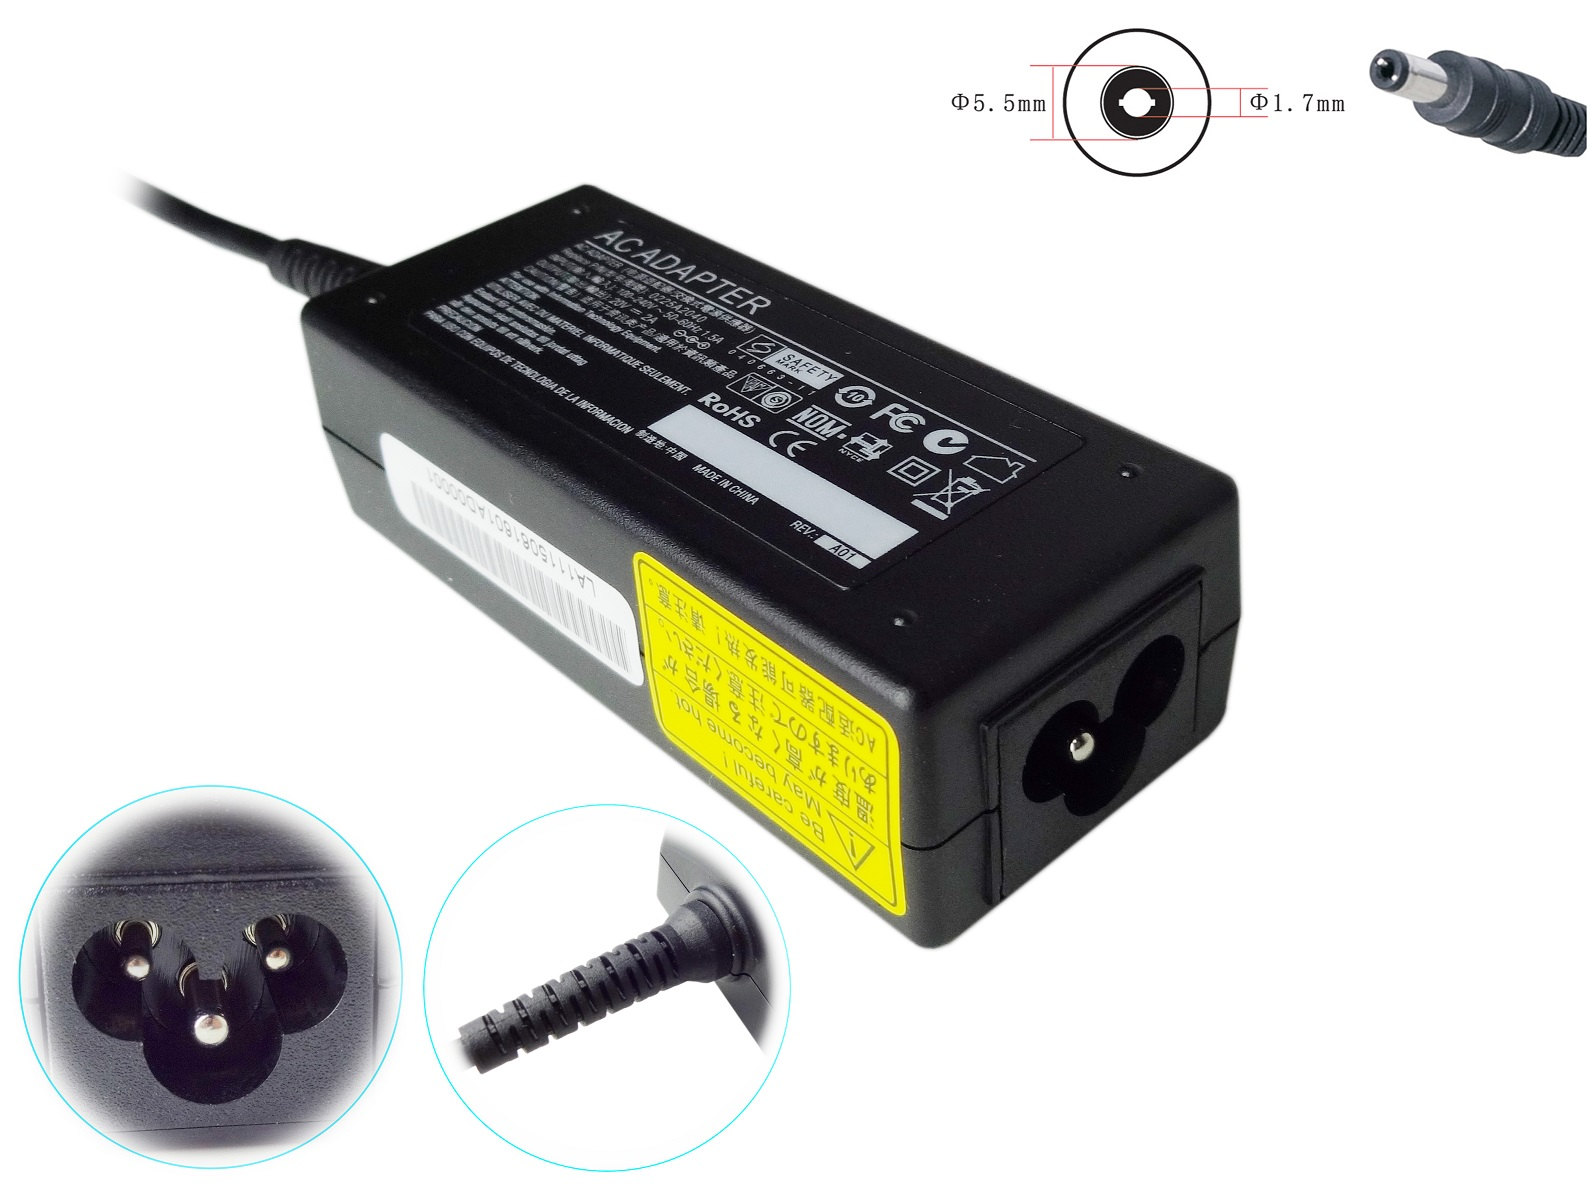 AC/DC 12V 1A power adapter for laptop